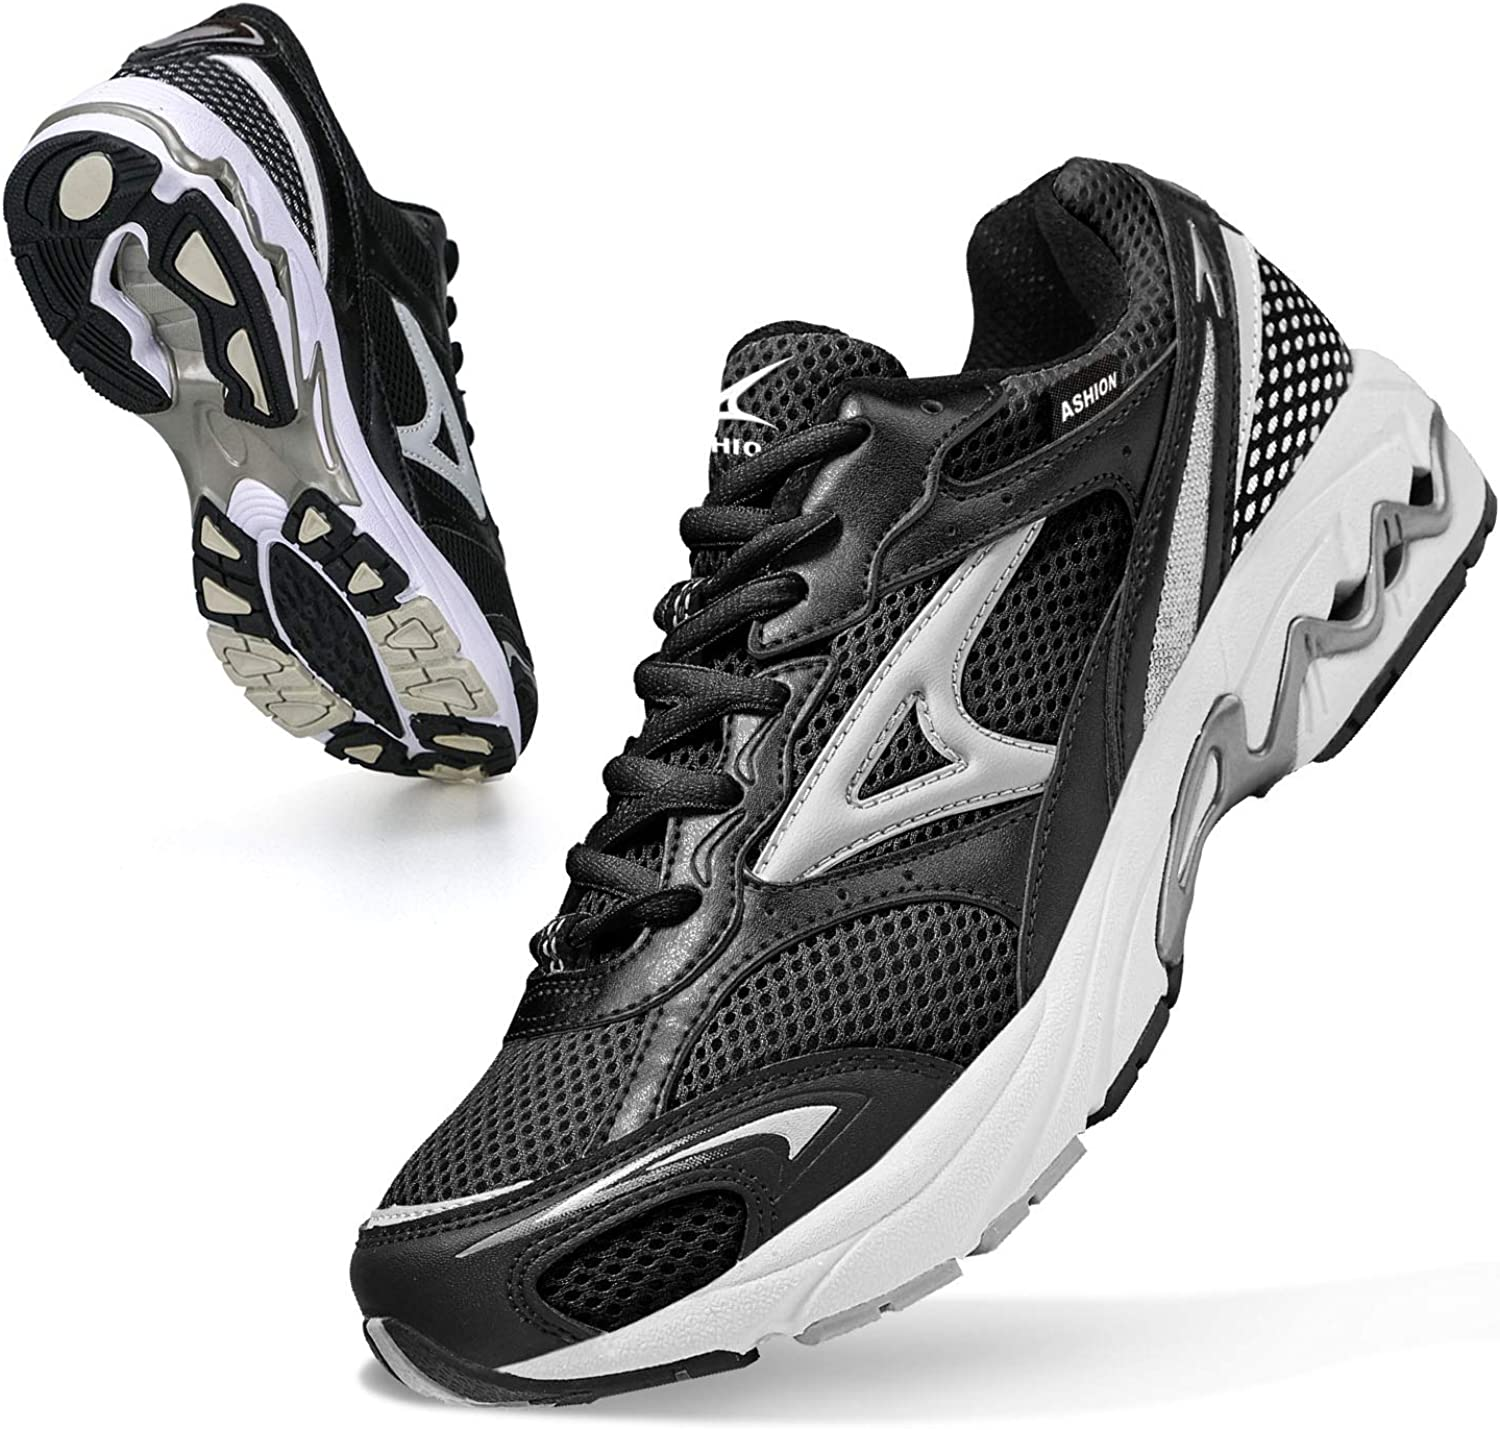 Same day shipping ASHION Mens Road Trail Running Shoes cheap Walking Workou Athletic Gym